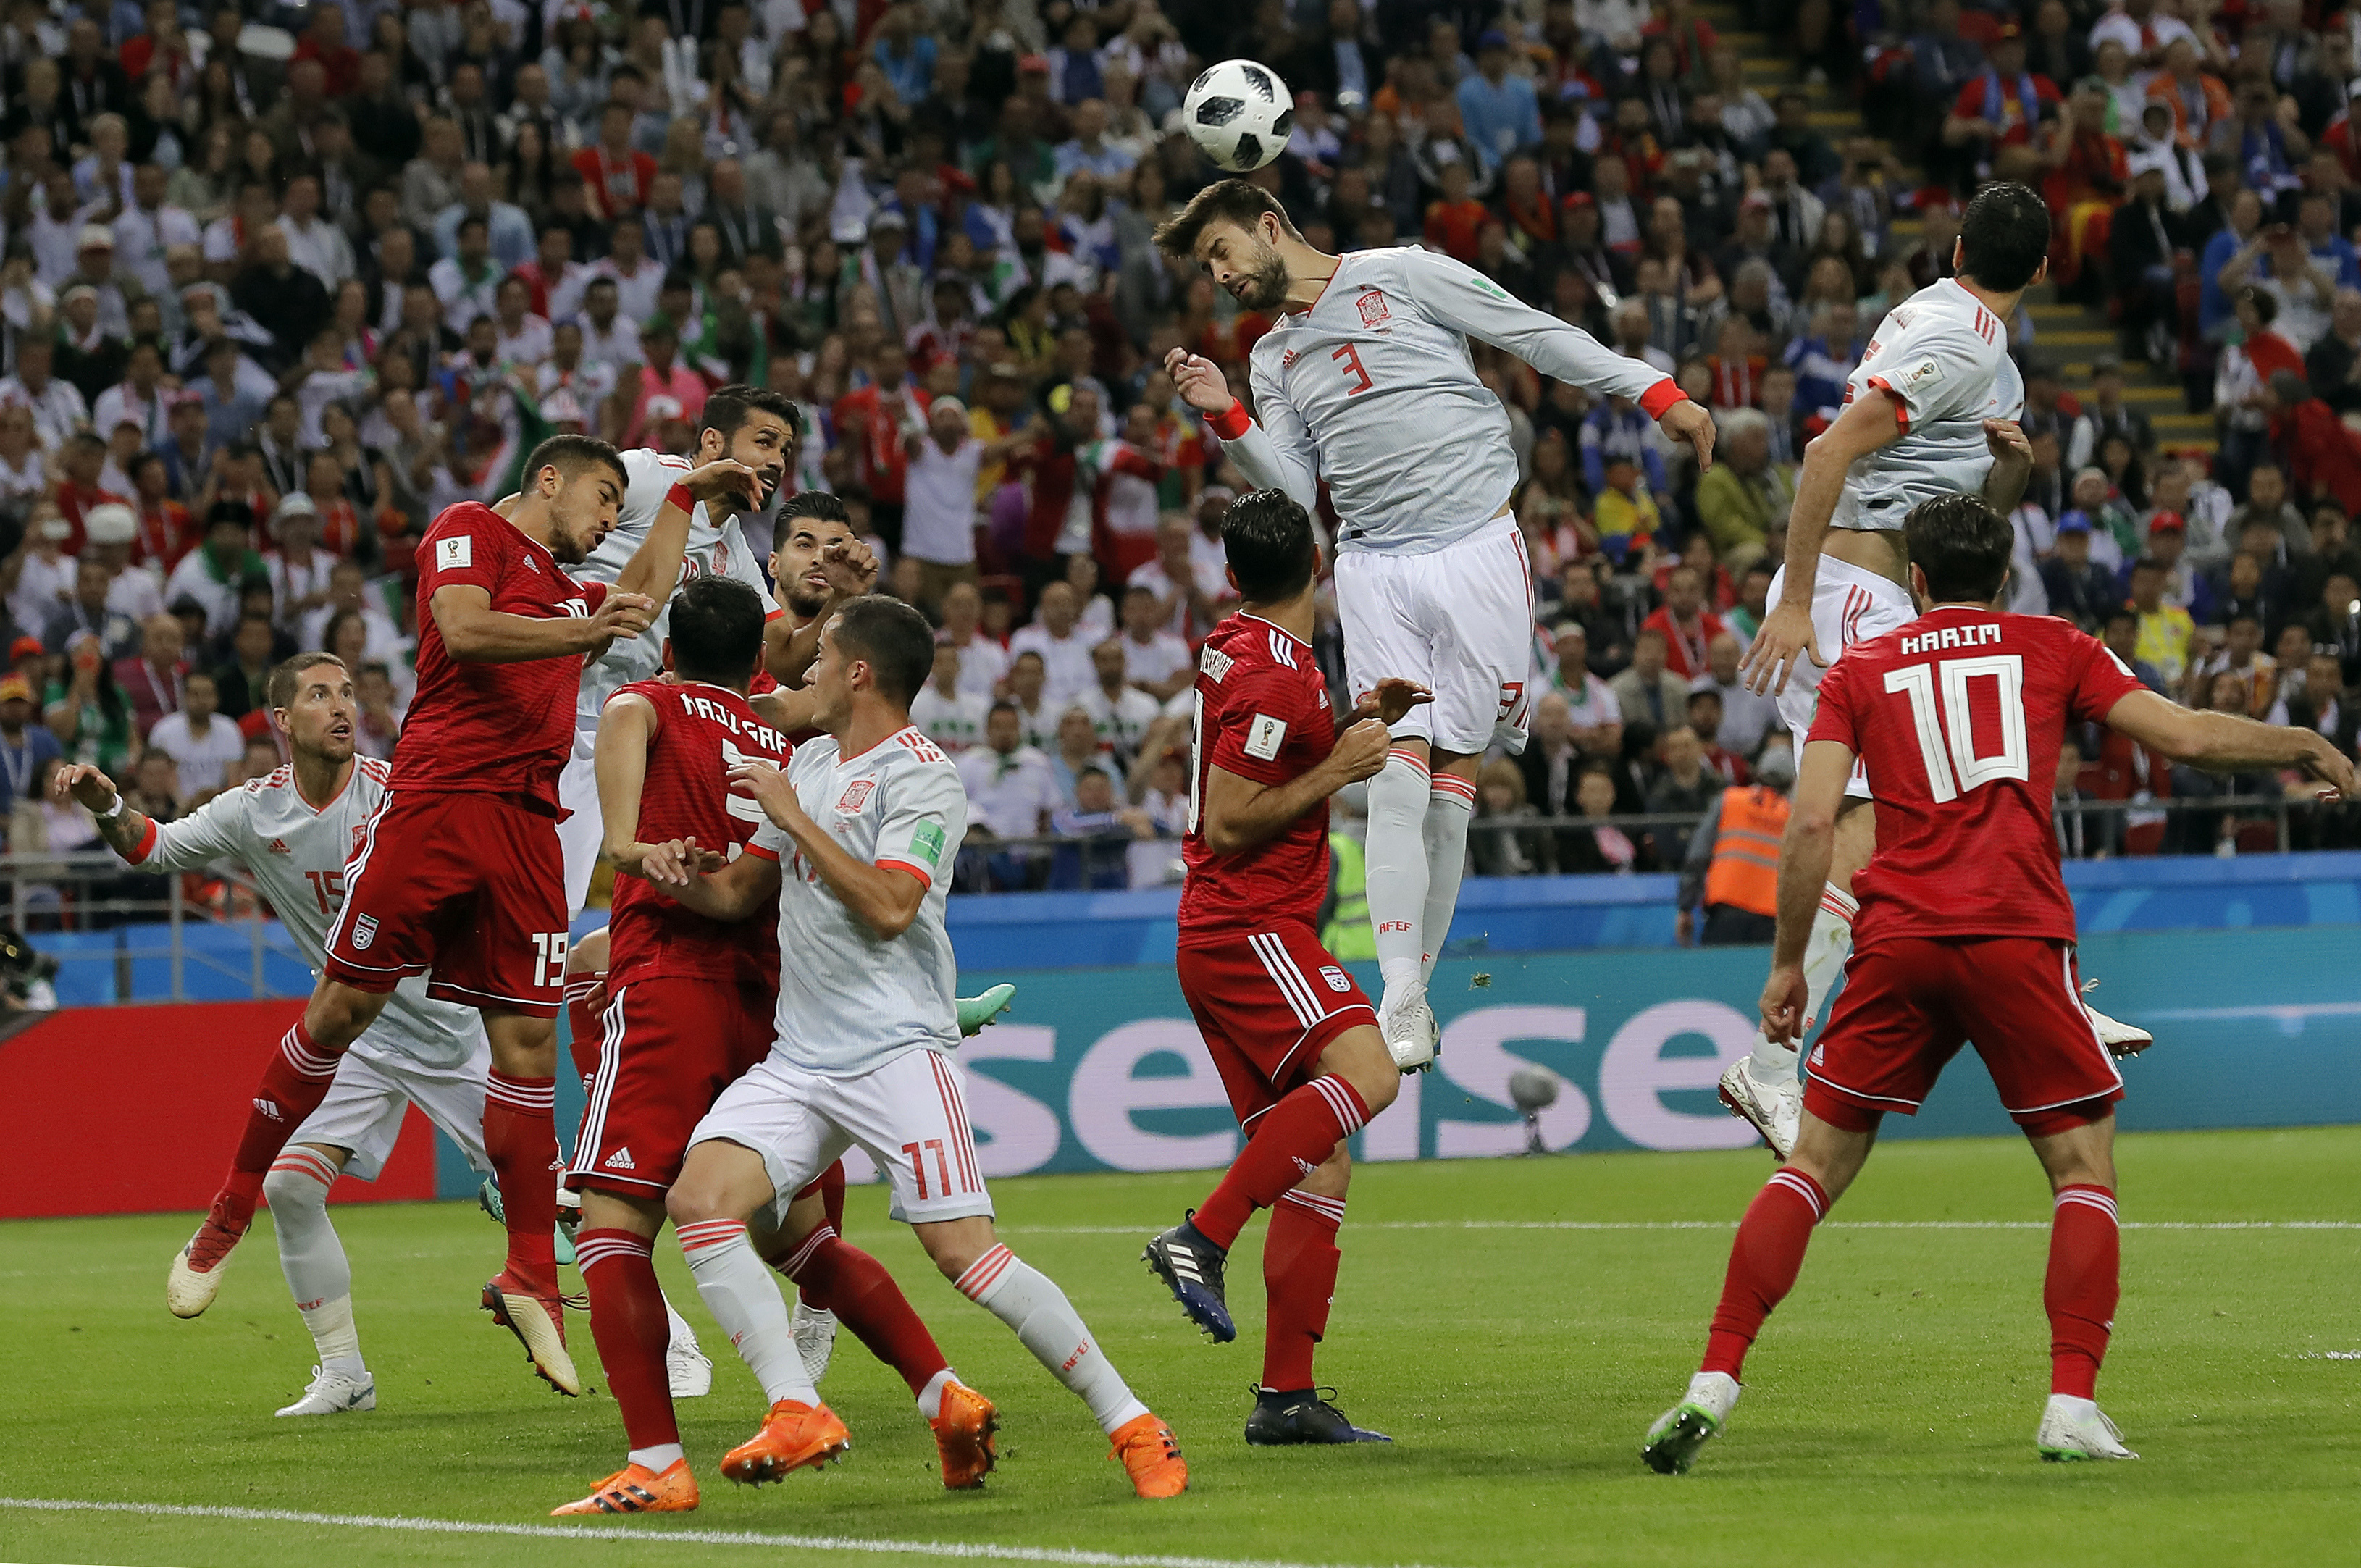 <div class='meta'><div class='origin-logo' data-origin='none'></div><span class='caption-text' data-credit='Manu Fernandez/AP Photo'>Spain's Gerard Pique, center, jumps for a header during the group B match between Iran and Spain at the 2018 soccer World Cup in the Kazan Arena in Kazan, Russia on June 20, 2018.</span></div>